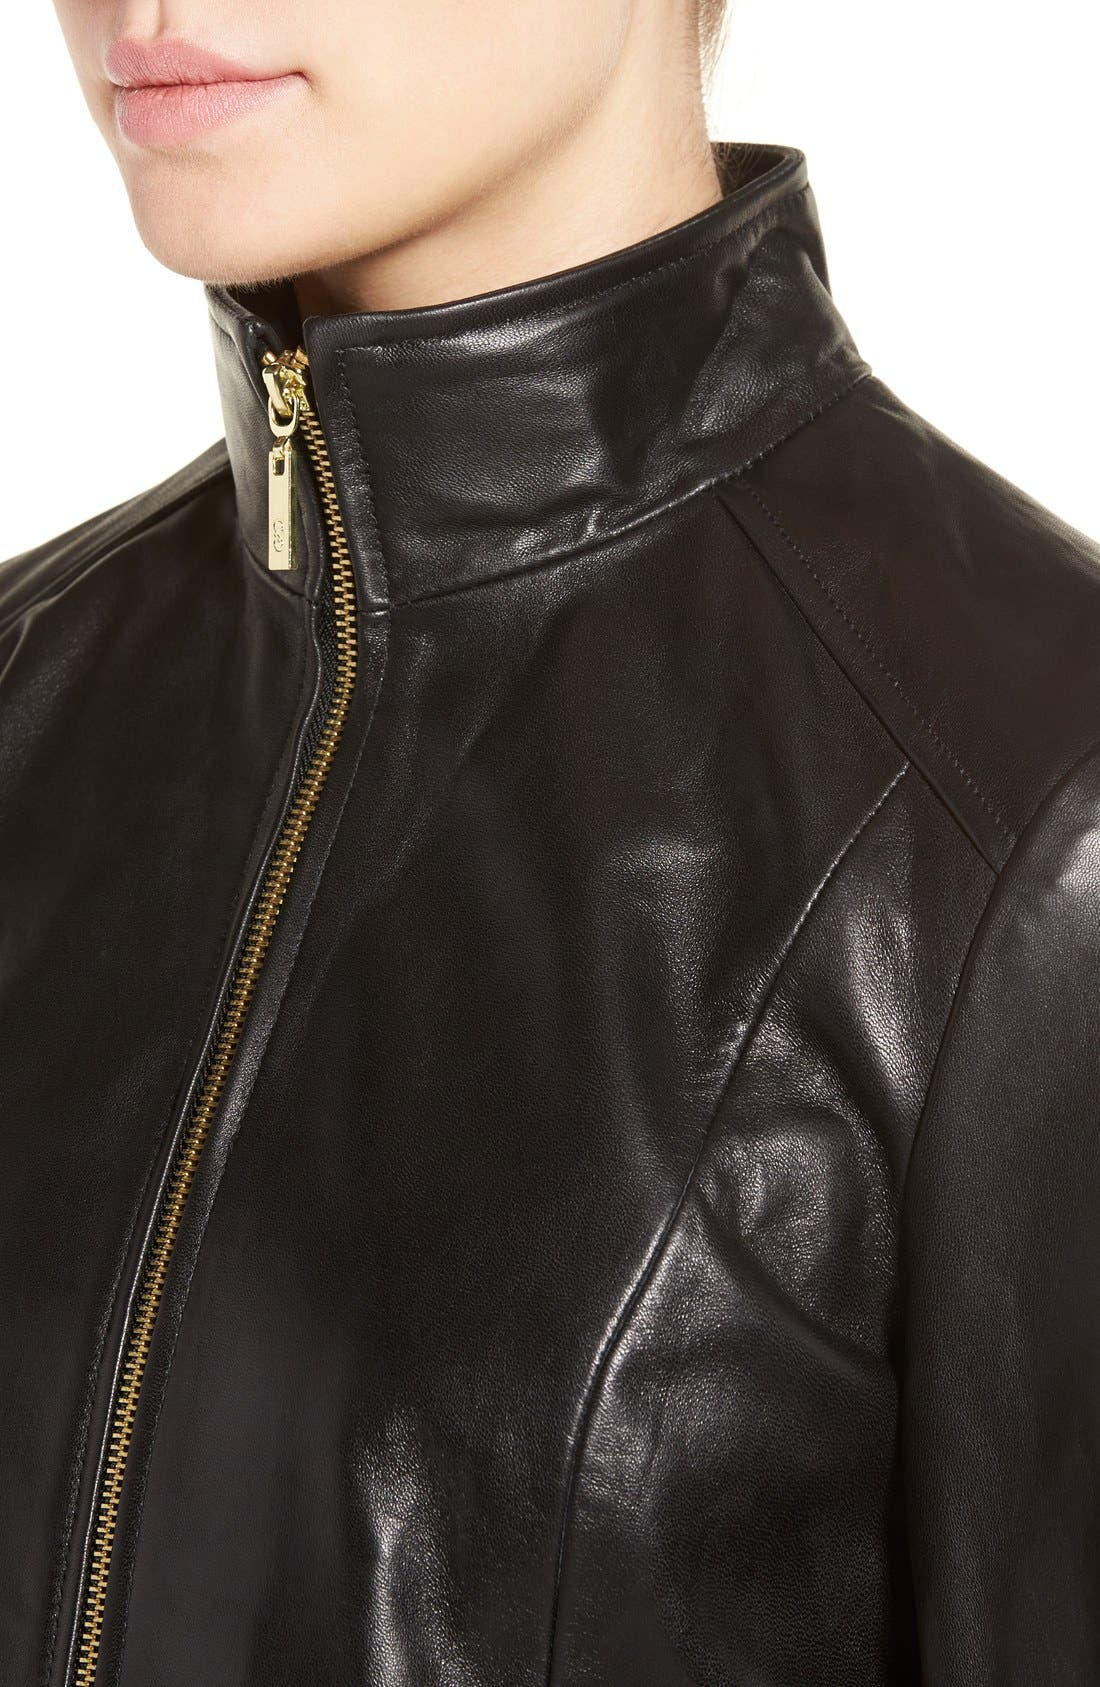 Wing Collar Leather Jacket,                             Alternate thumbnail 4, color,                             Black